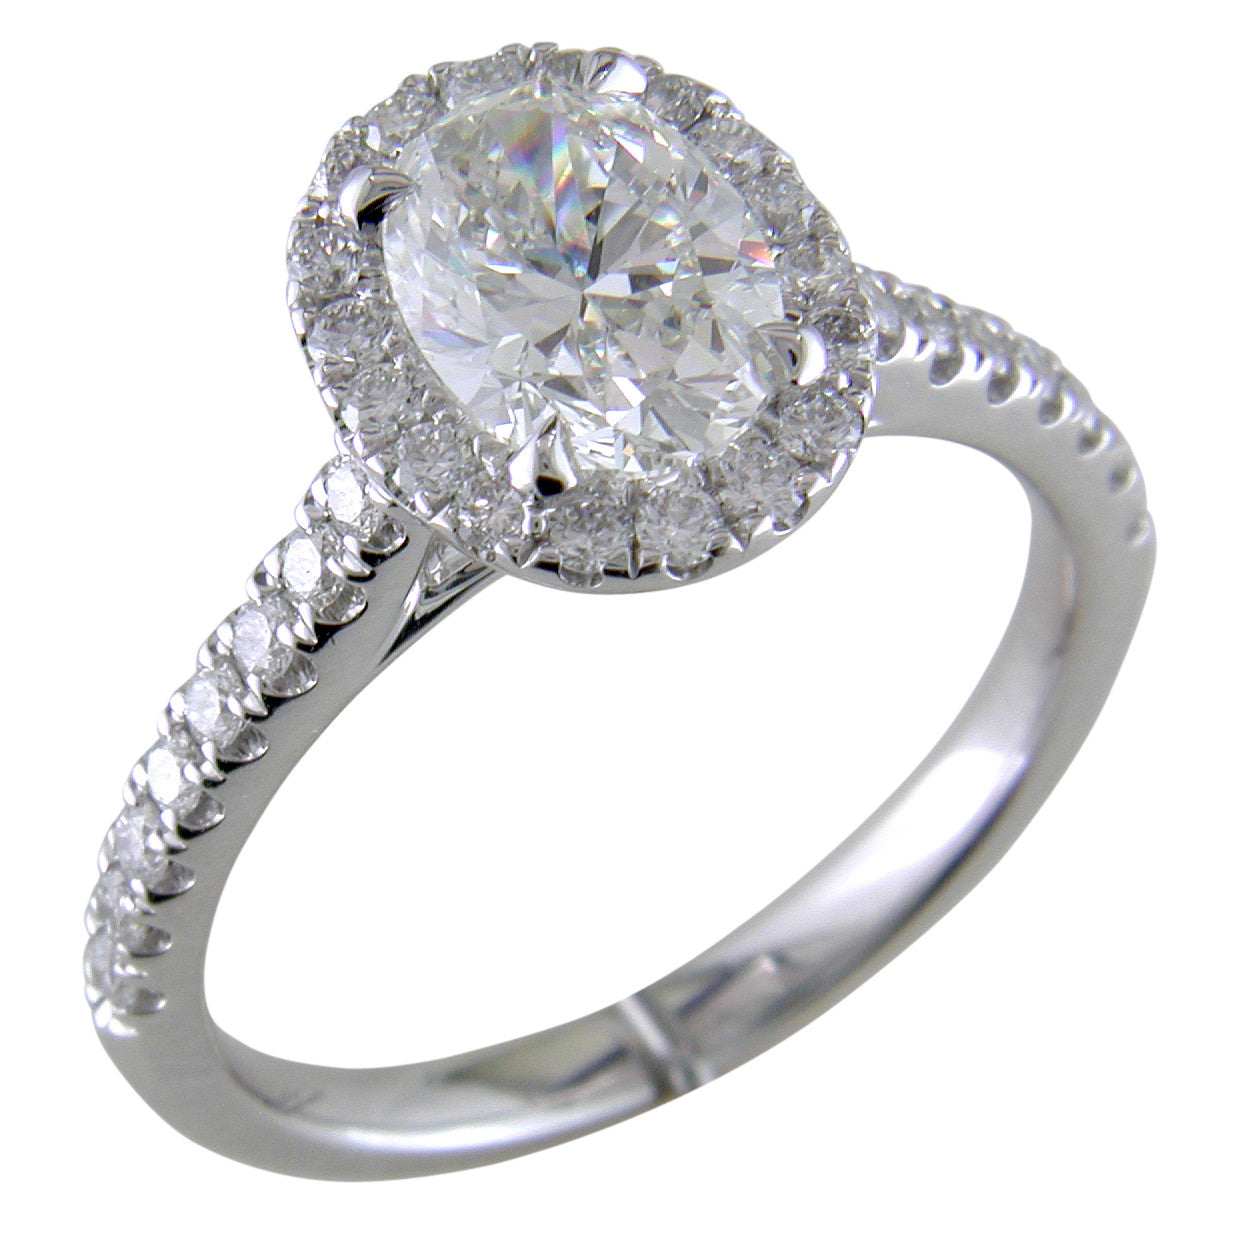 5f3afeaa3e0 Oval Brilliant 1.30 carat Forevermark Halo Engagement Ring Platinum